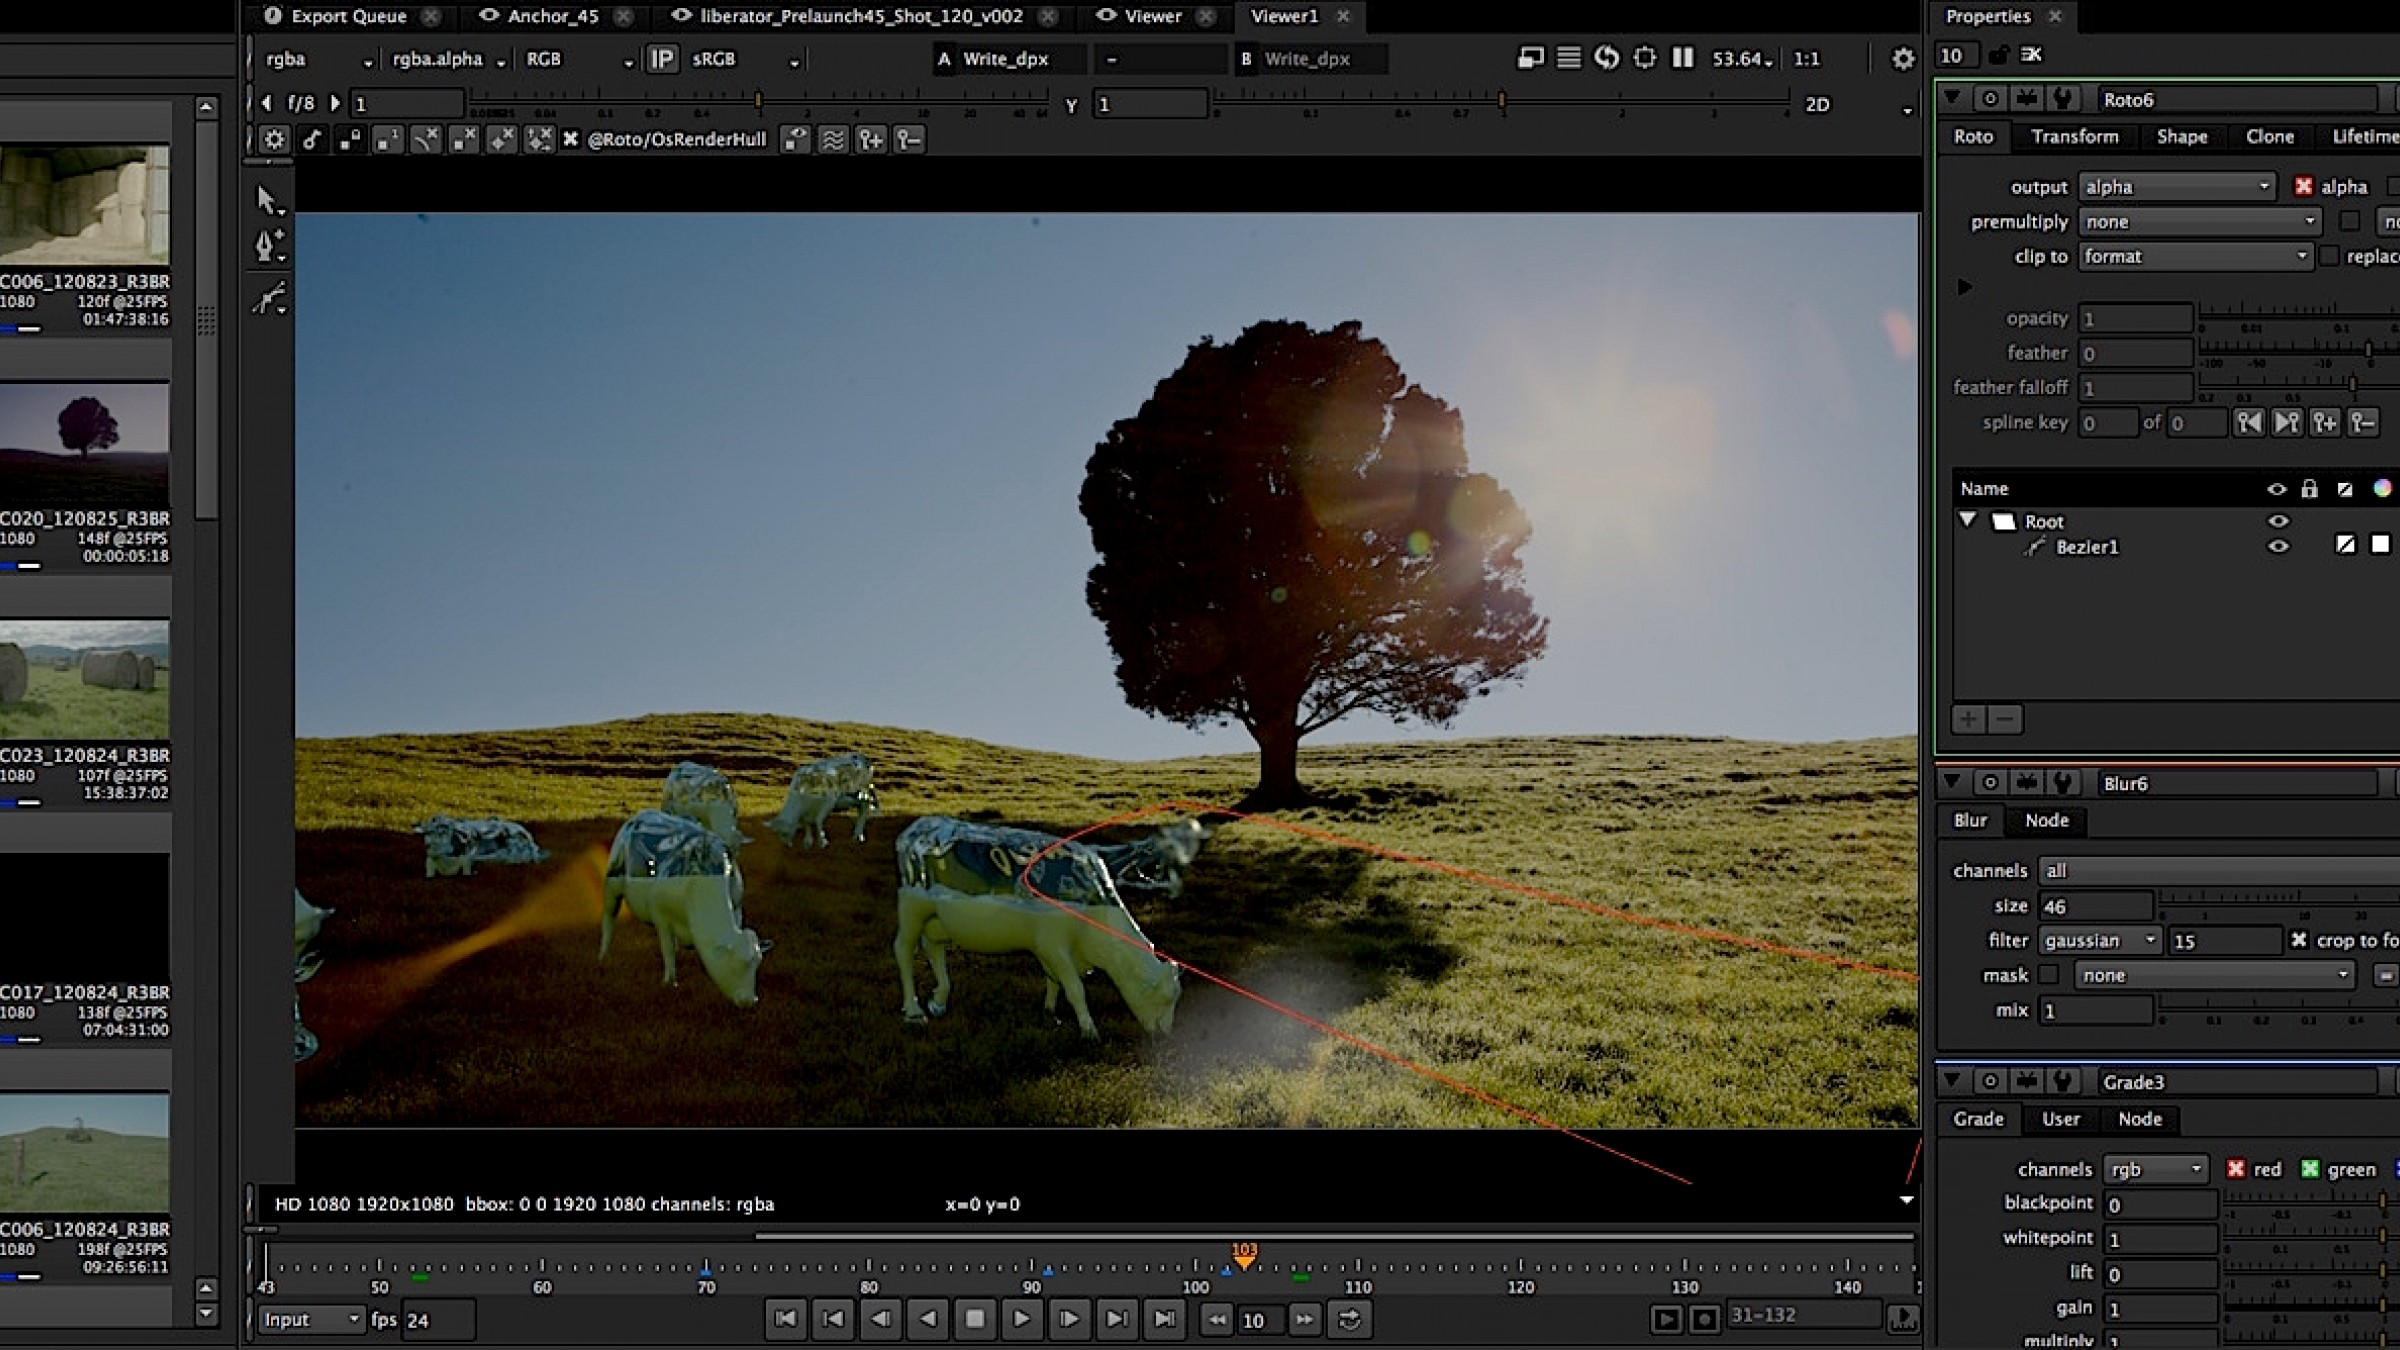 Nuke, the Powerful Node-Based Compositing Software, Is Now